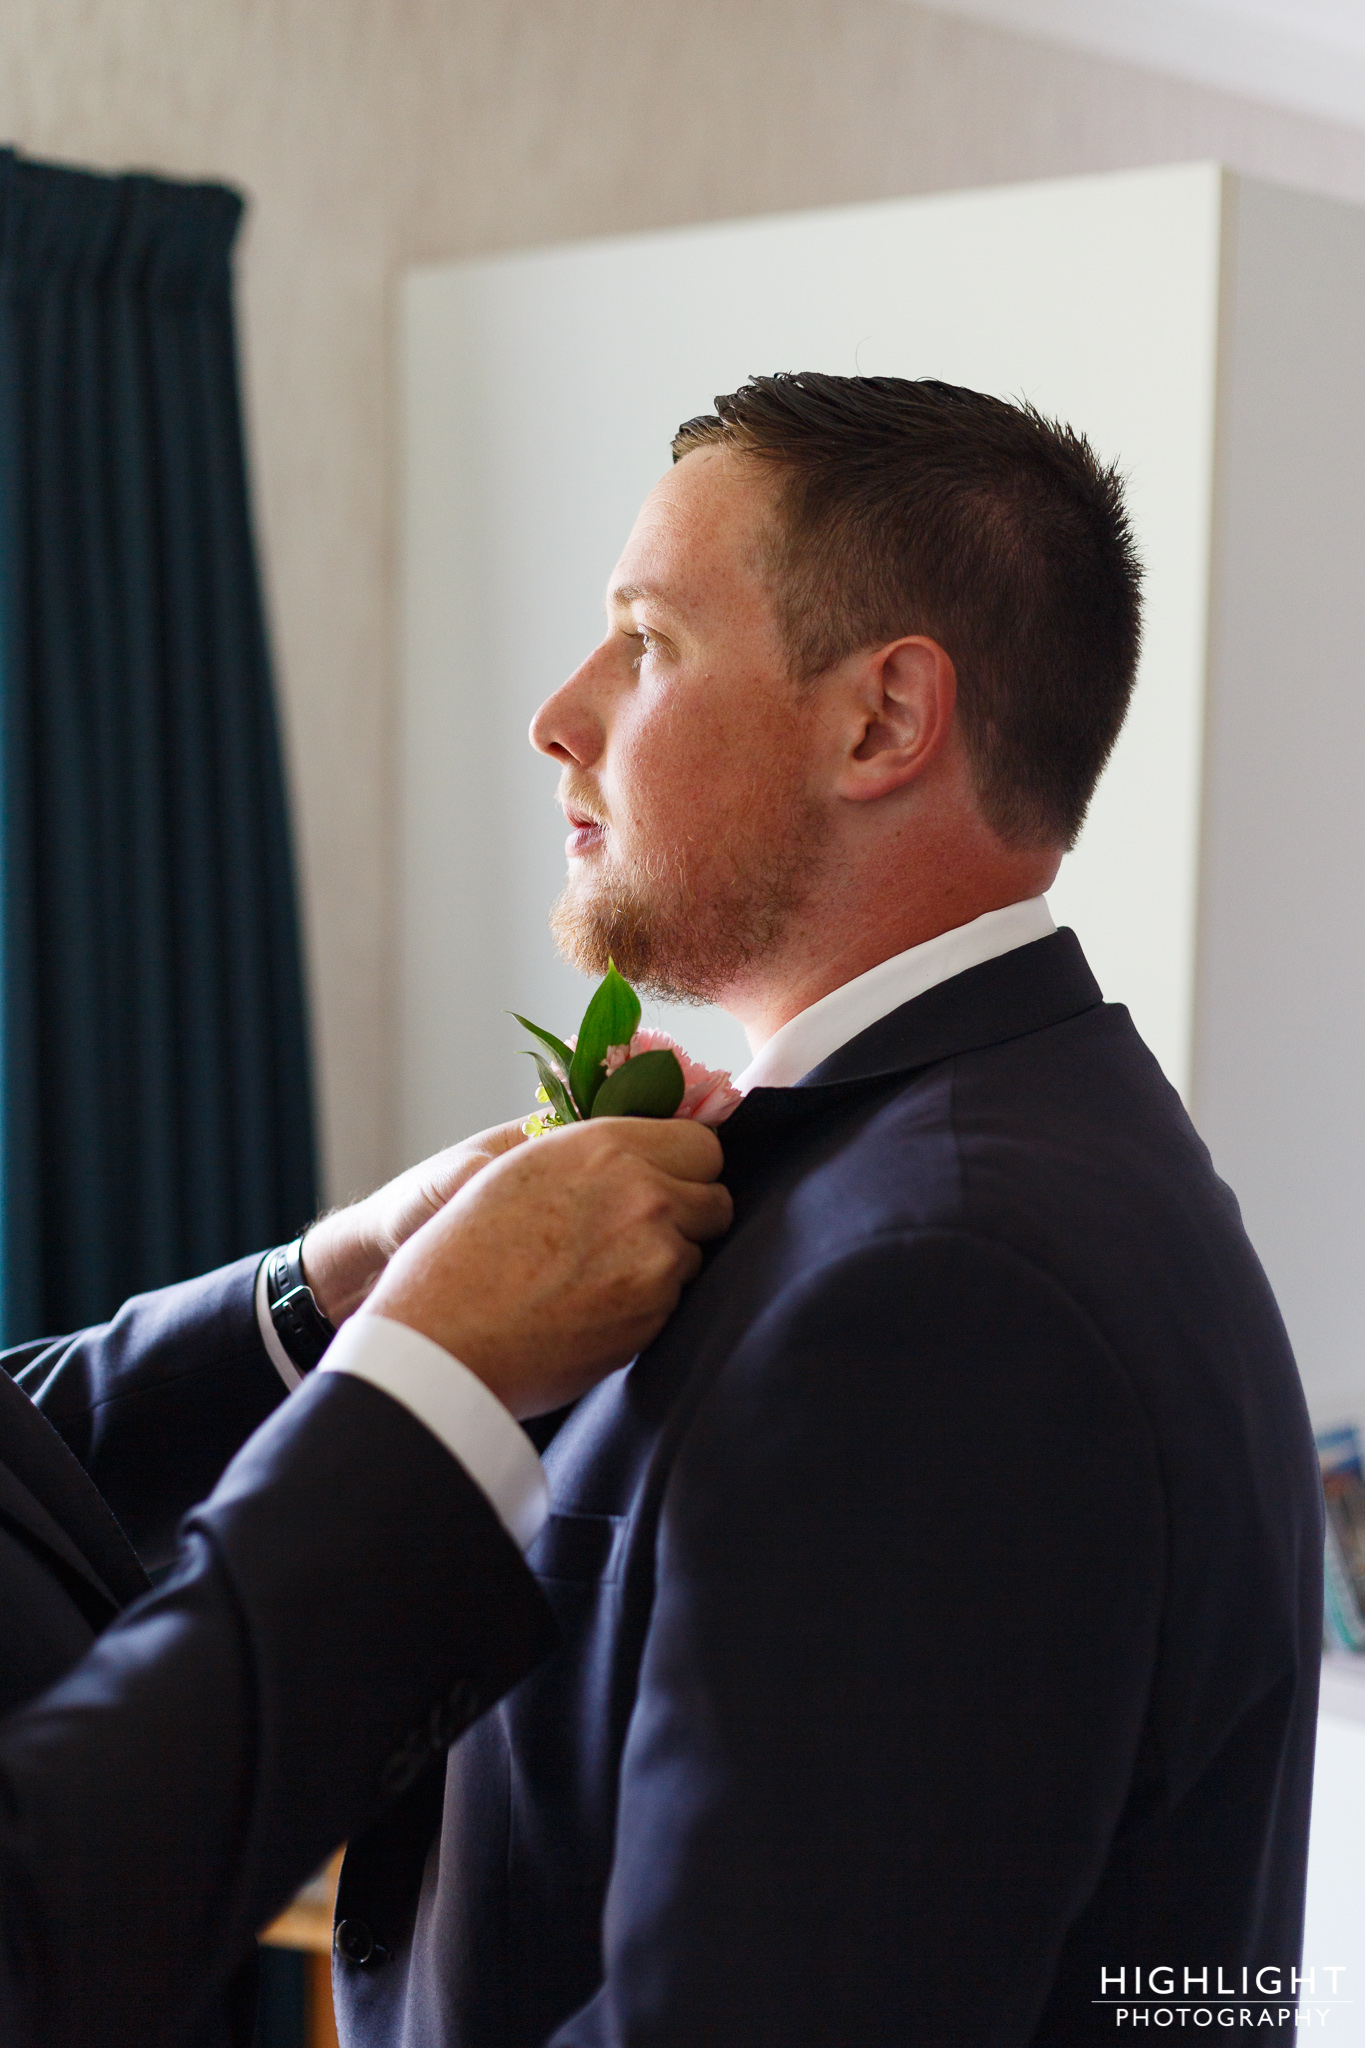 highlight_wedding_photography_palmerston_north_manawatu_chalet_wedding-11.jpg